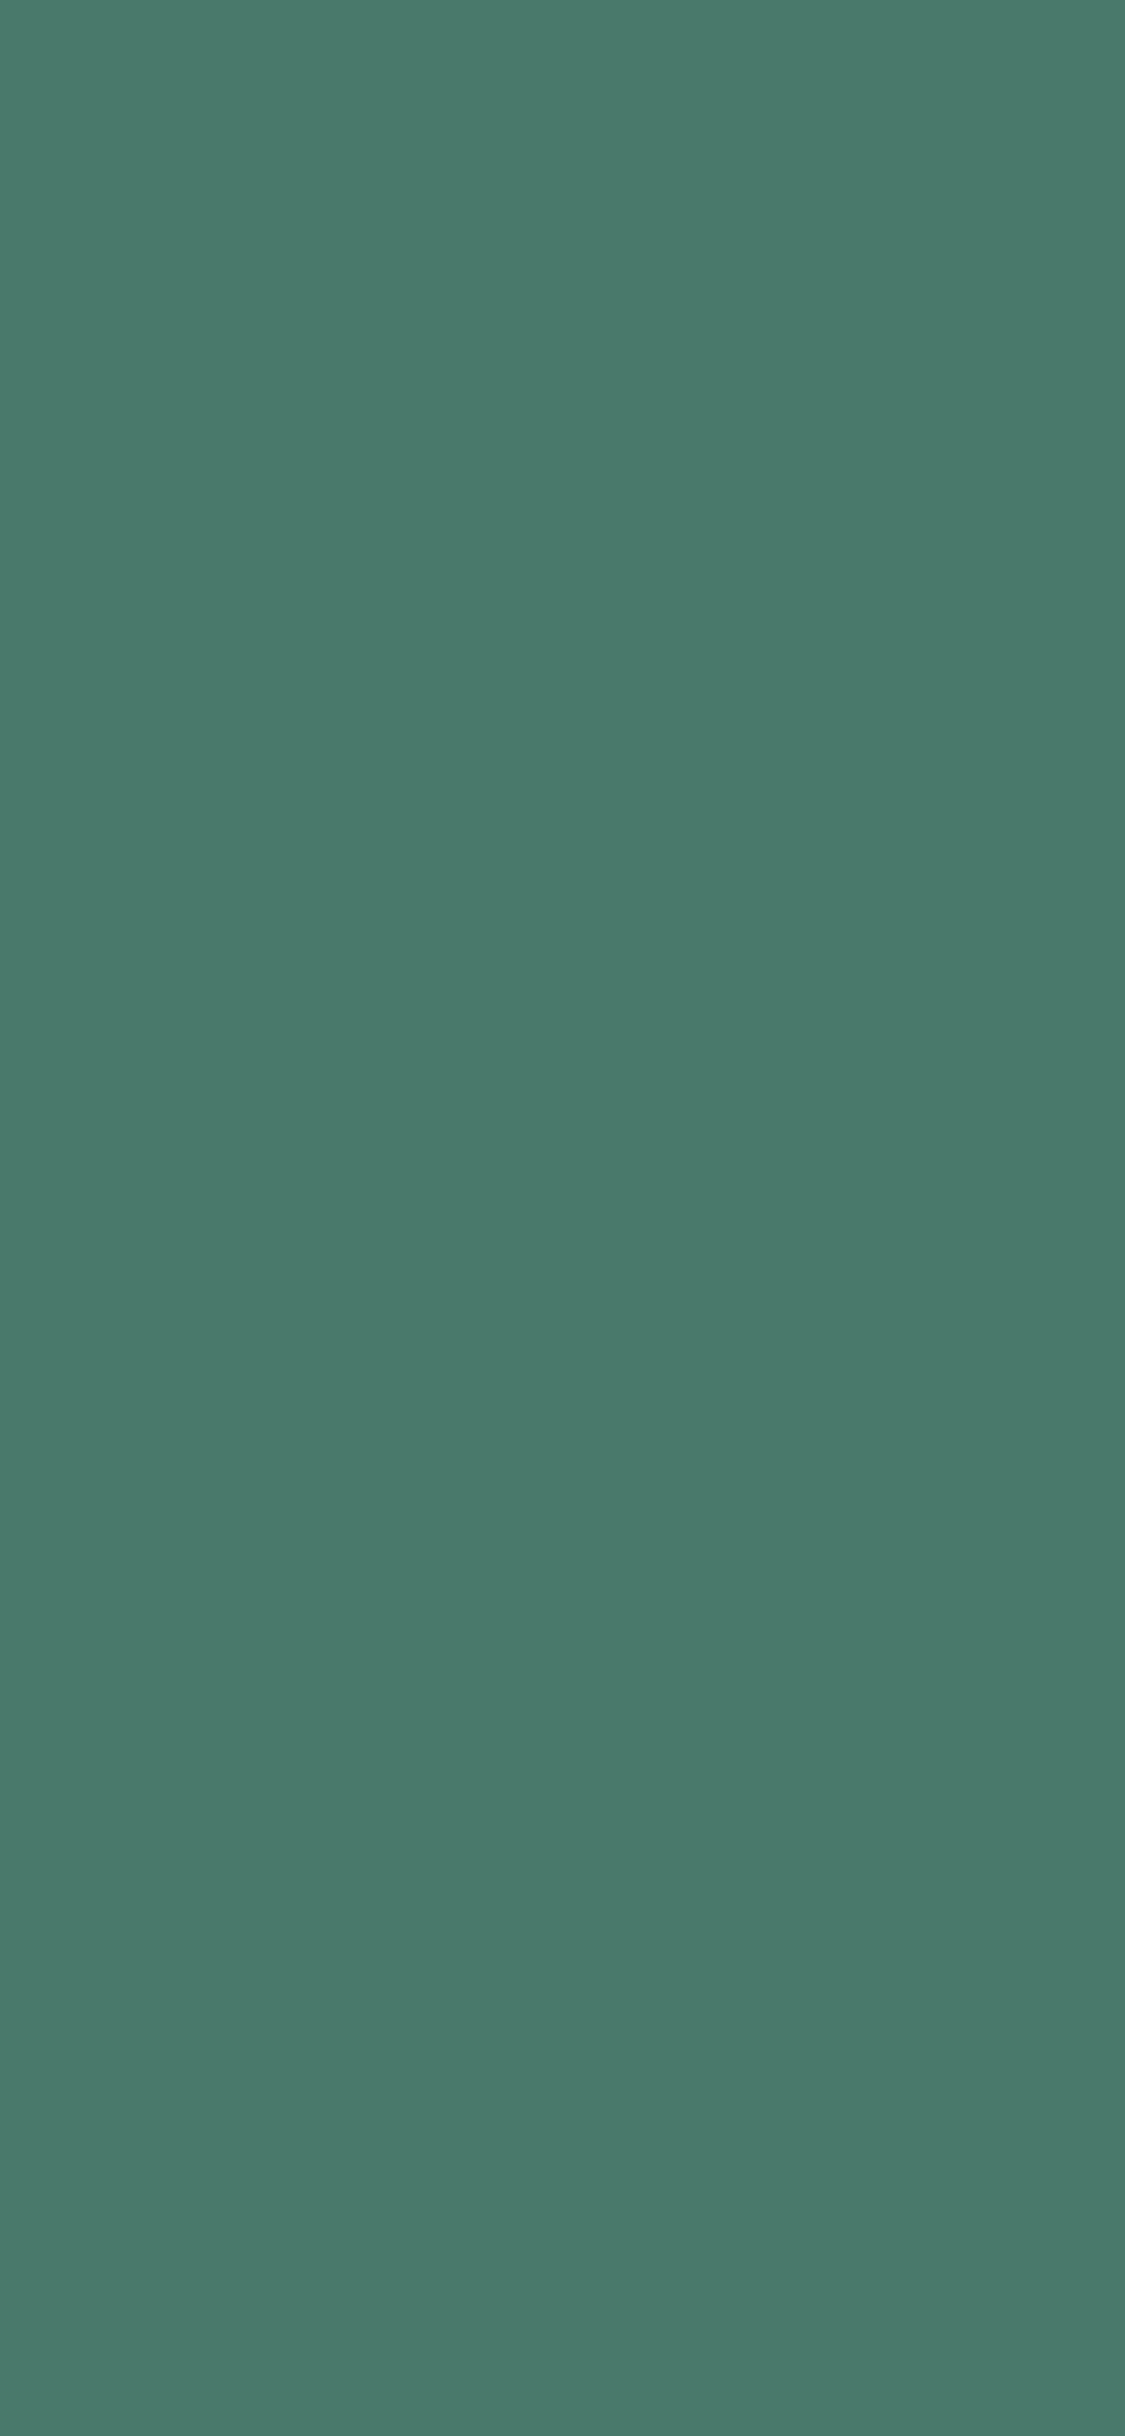 1125x2436 Hookers Green Solid Color Background